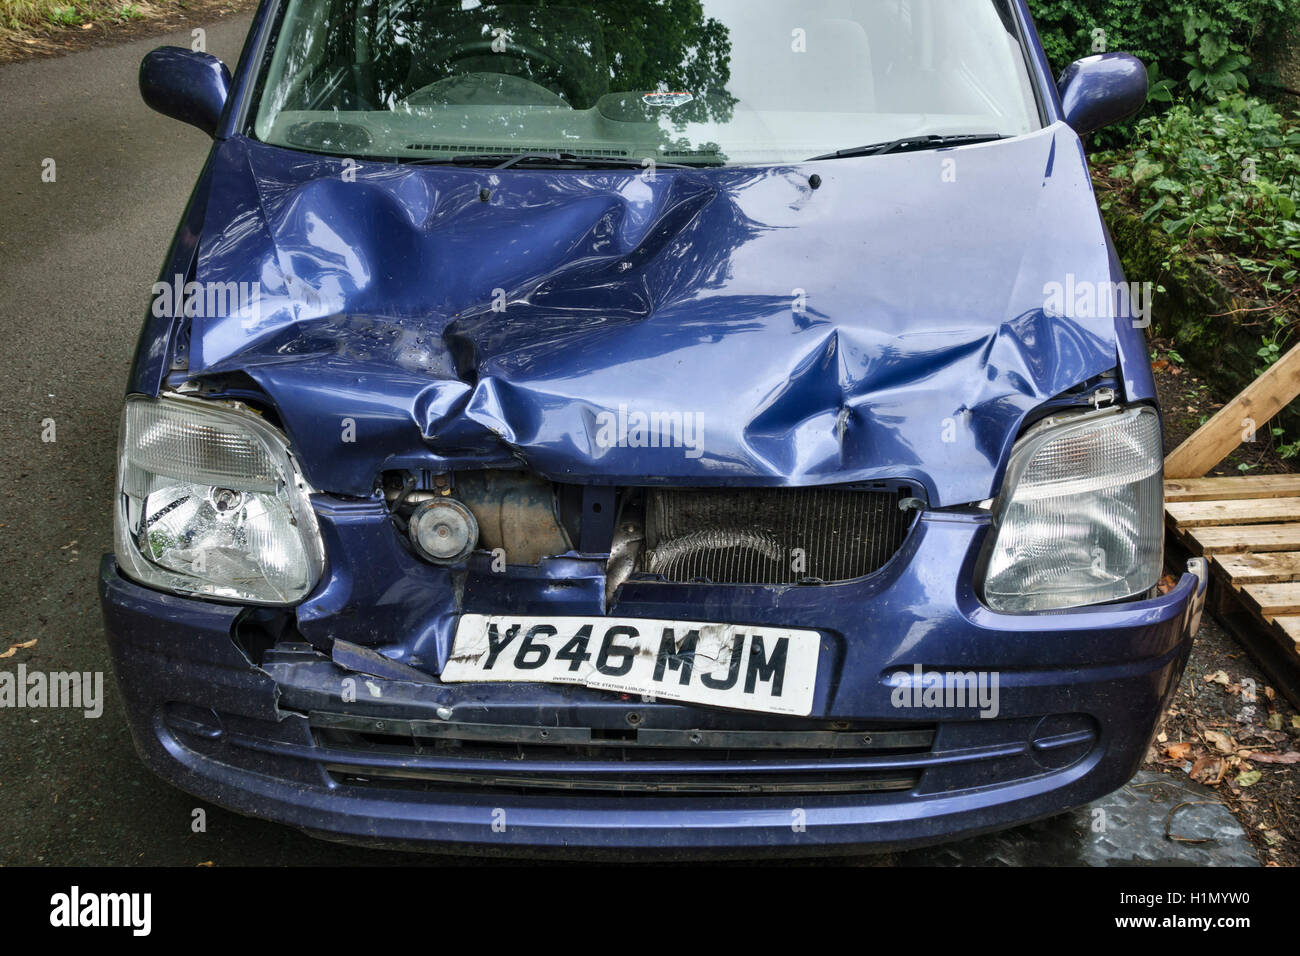 UK. A Vauxhall Agila car with a badly damaged bonnet and radiator following a collision with another vehicle - Stock Image